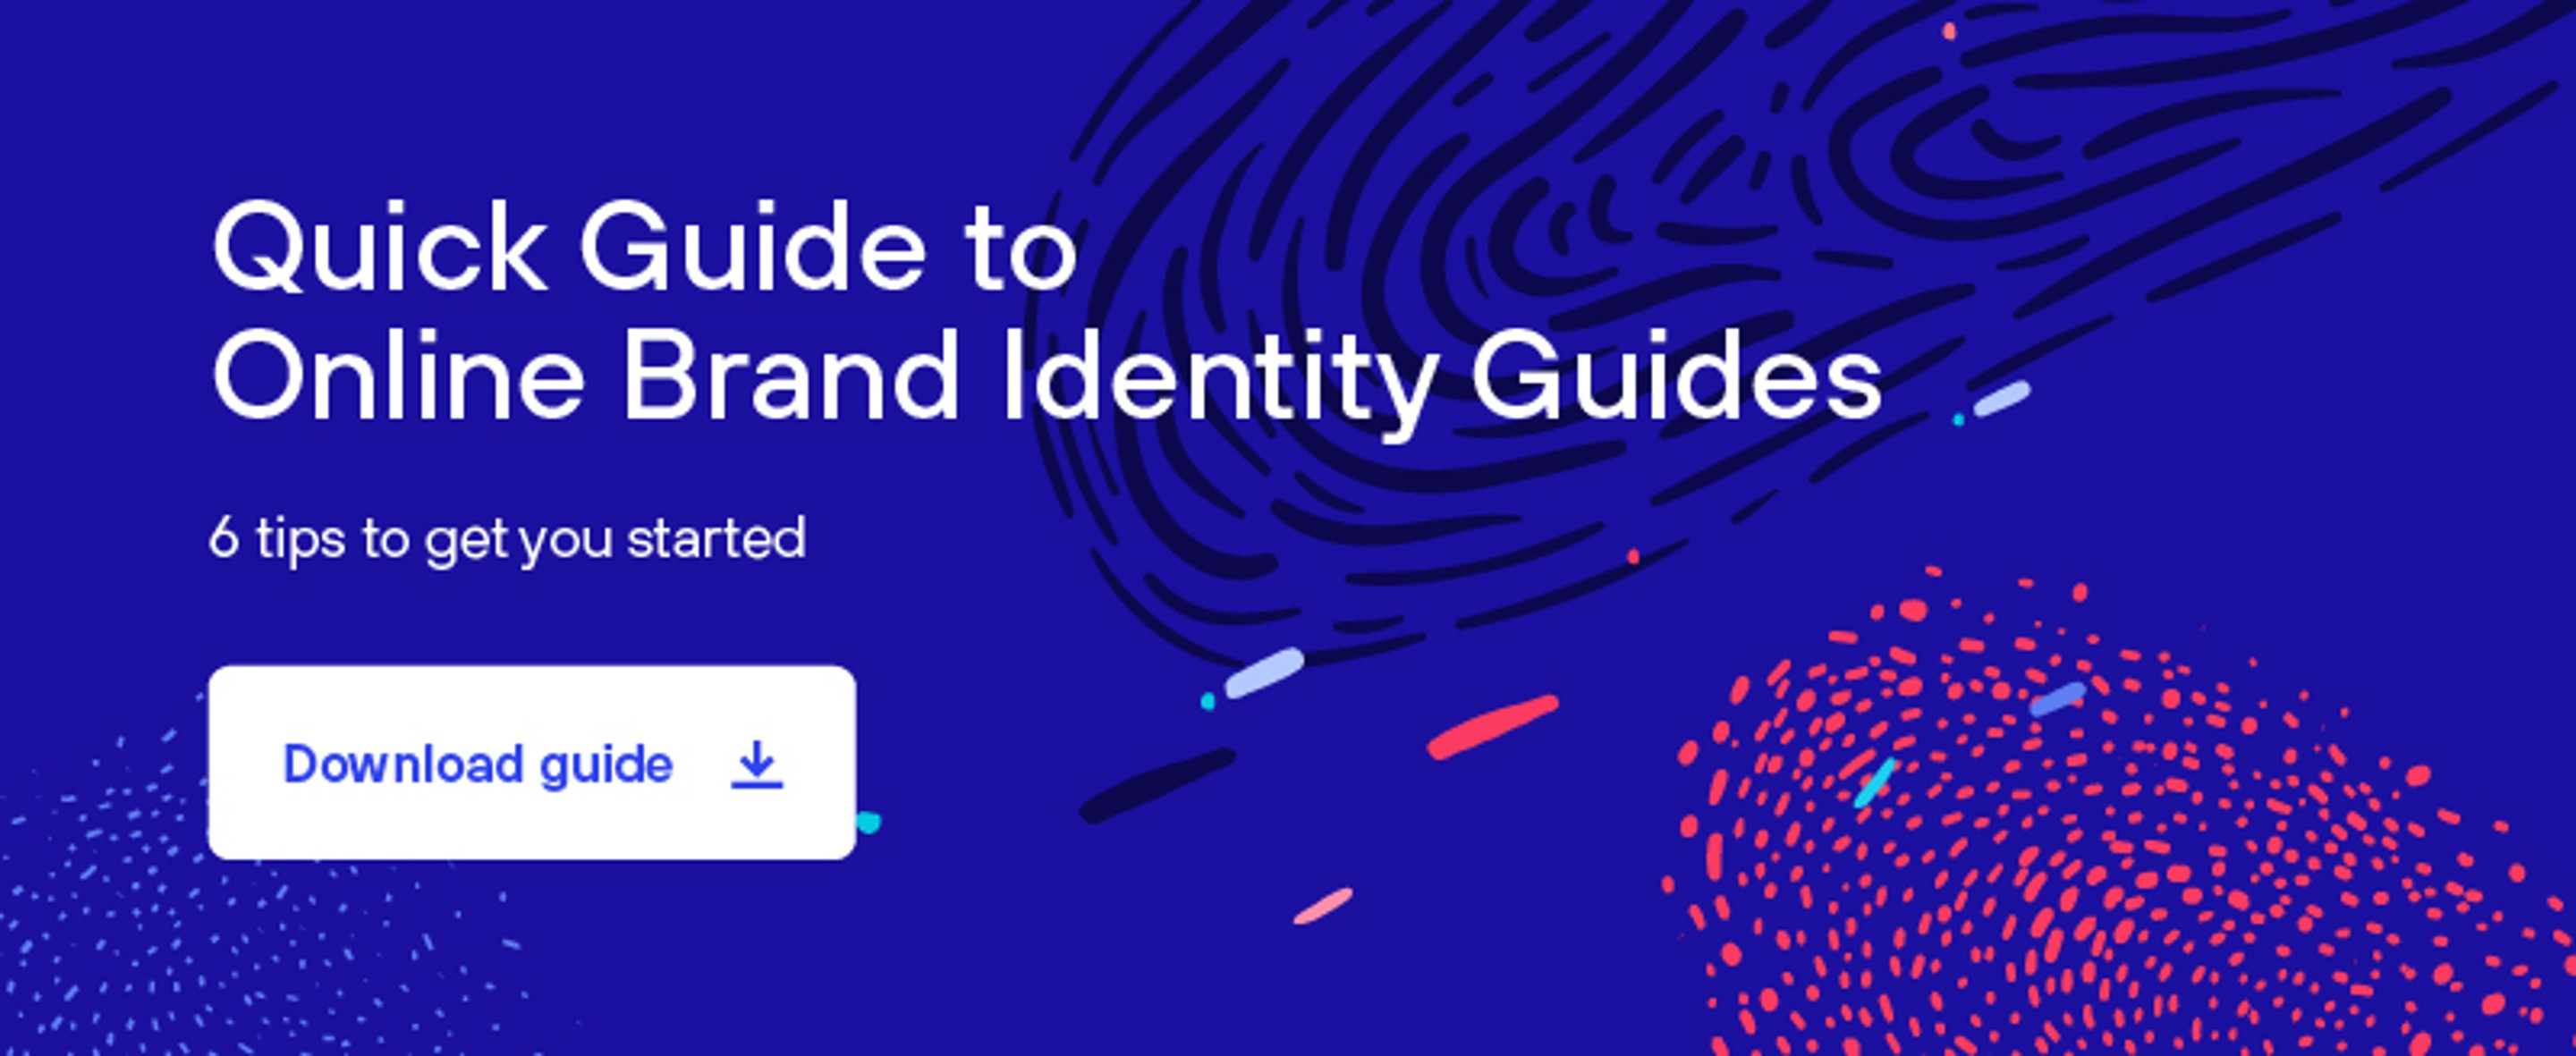 How to create digital brand identity guidelines